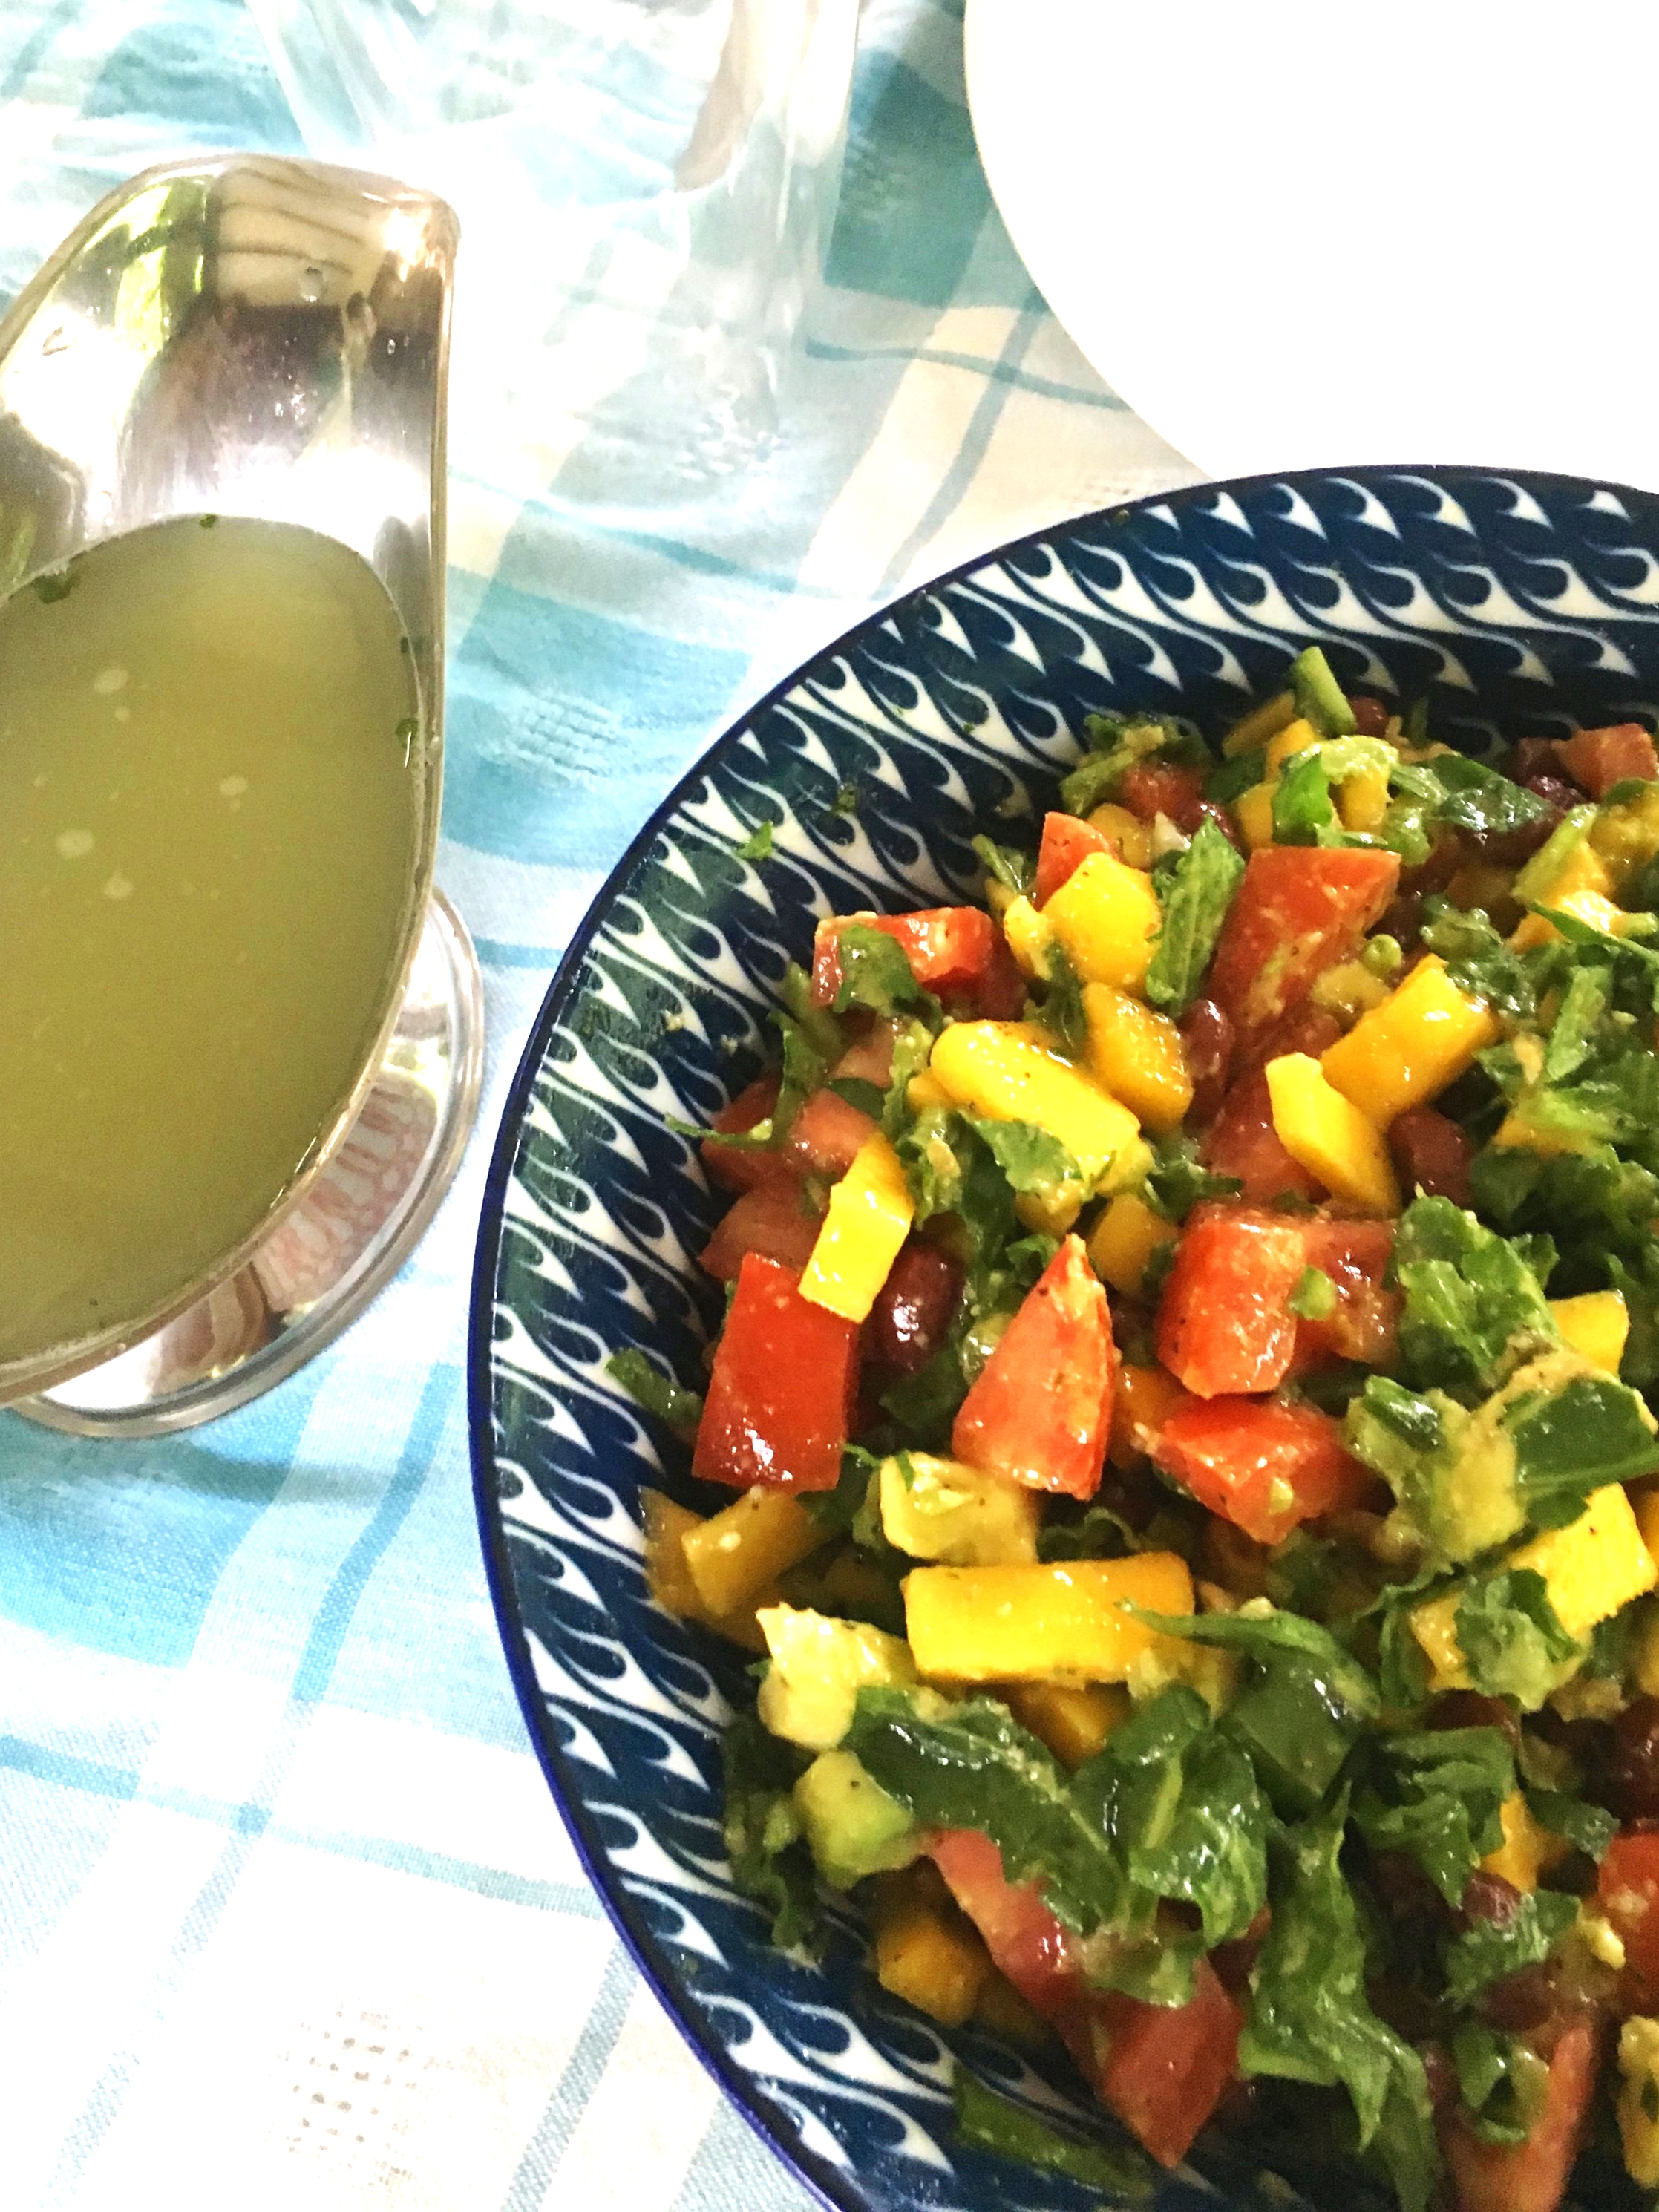 Alkalizing Sweet Potato and Tomato Salad - Serving Size:2 peopleIngredients:1 avocado1/2 large sweet potato2 small tomatoes1 cup of arugula (chopped)1/4 cup basil (chopped)1 lime (juiced)1 tsp extra virgin olive oil1 pinch saltDirections:1. Peel potato and boil for about 10 minutes (until just tender).2. Meanwhile, dice up the remaining vegetables and mix together.3. When potato is cooked, dice it up and add it to the salad.4. Mix together the olive oil, lime and salt and pour over dressing and serve.